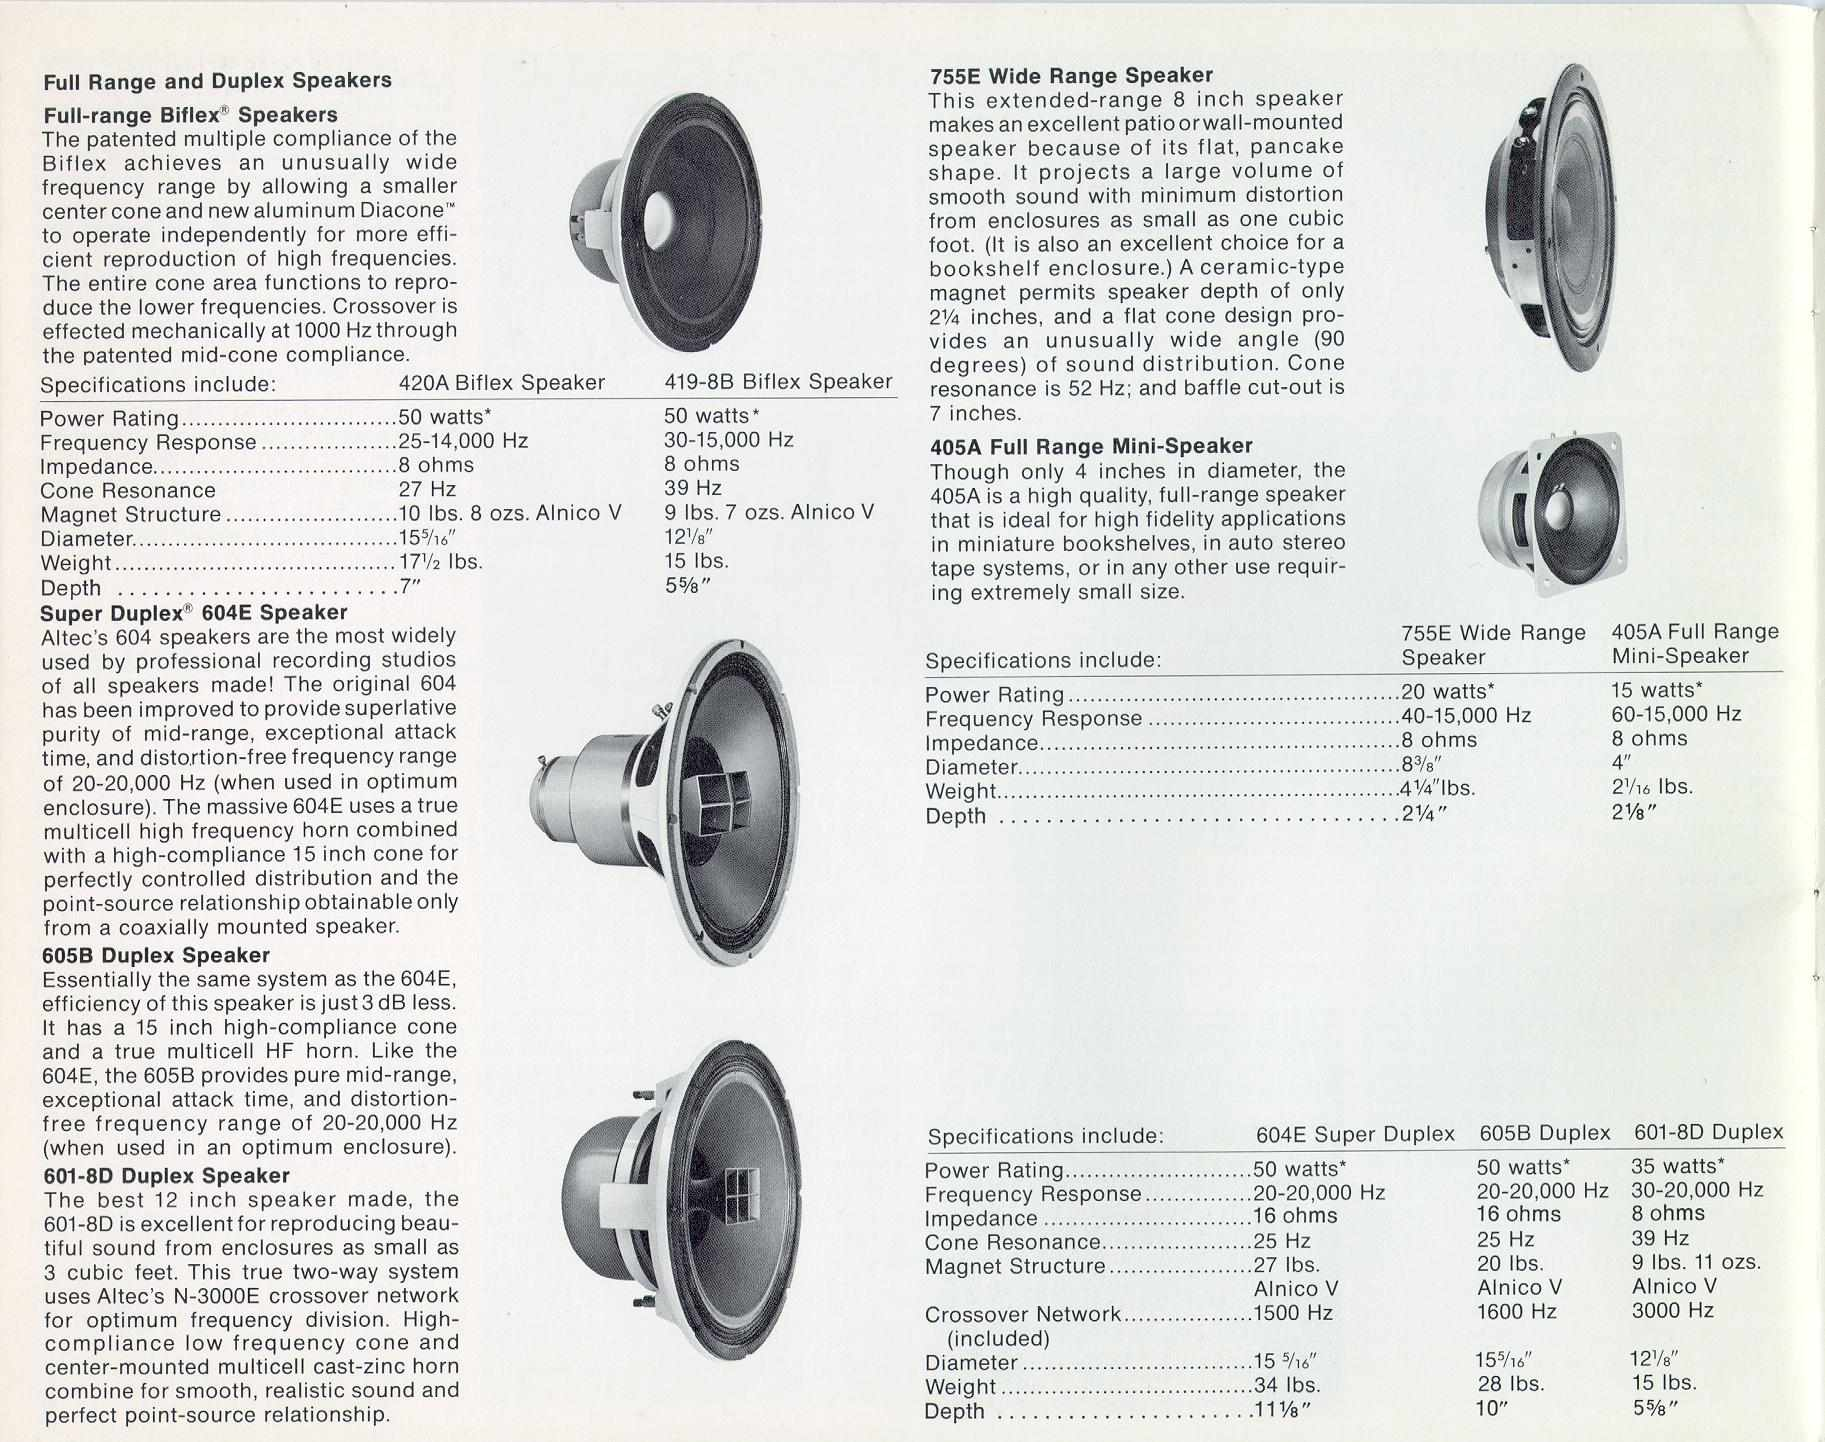 altec 601-8b duplexspeakers